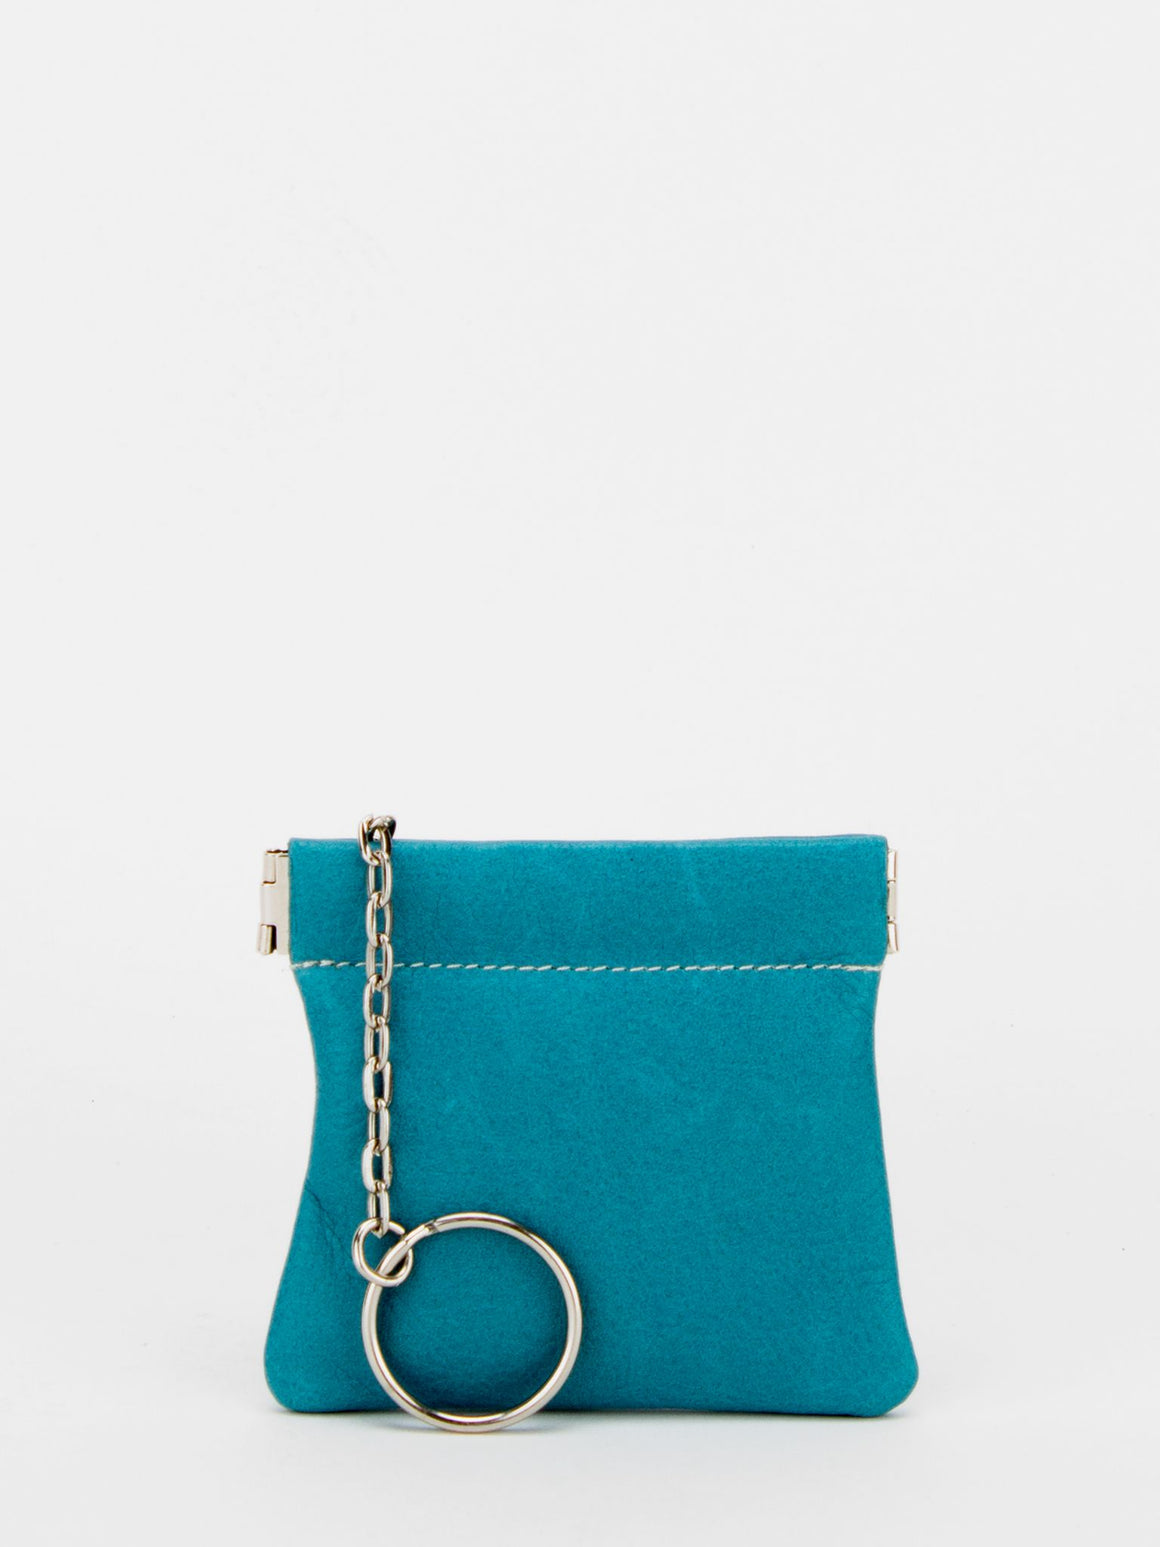 Petunia Leather Squeeze Change Purse - Turquoise